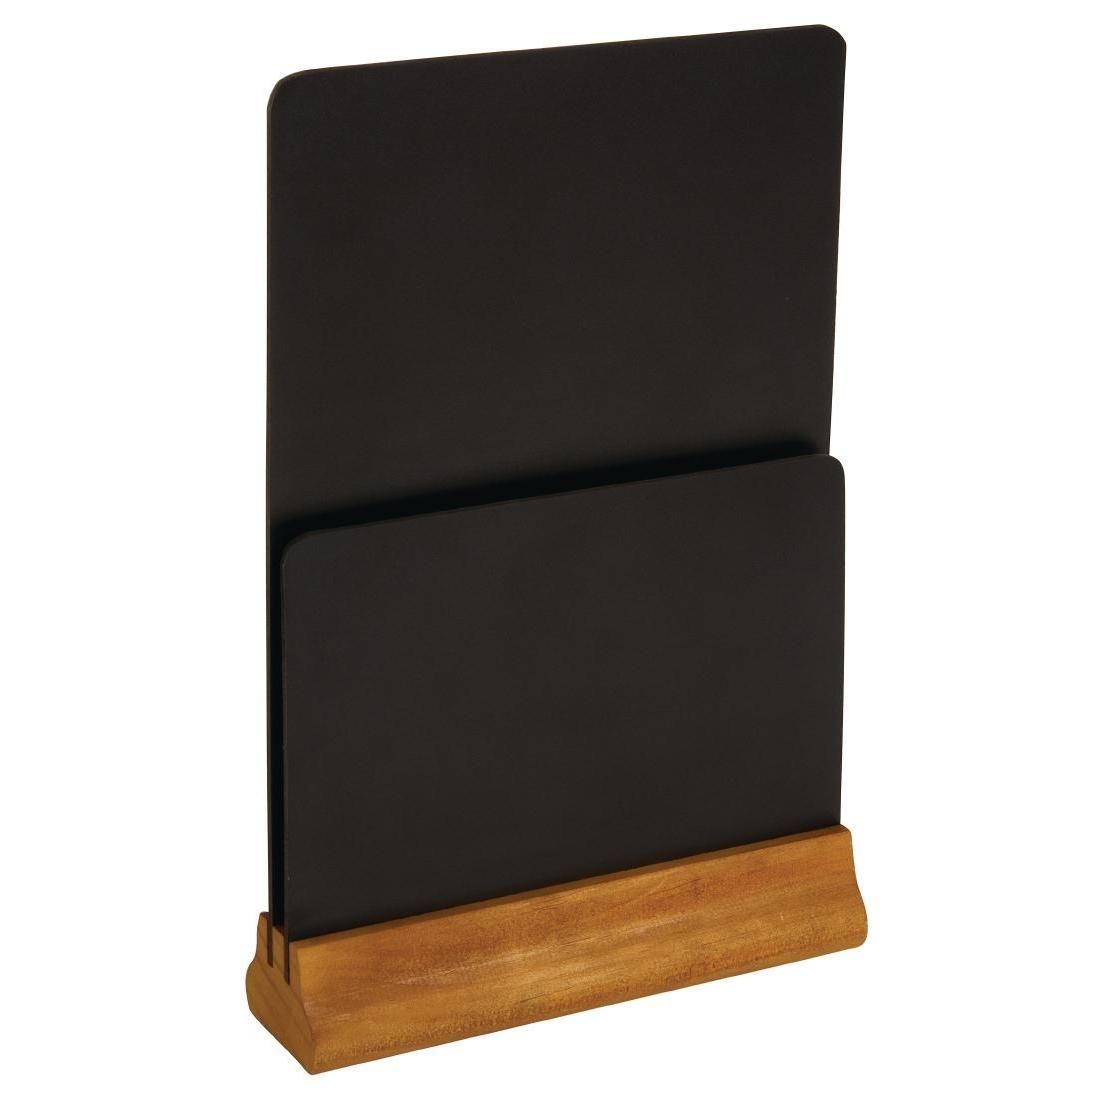 Olympia Double Blackboard Menu Holder